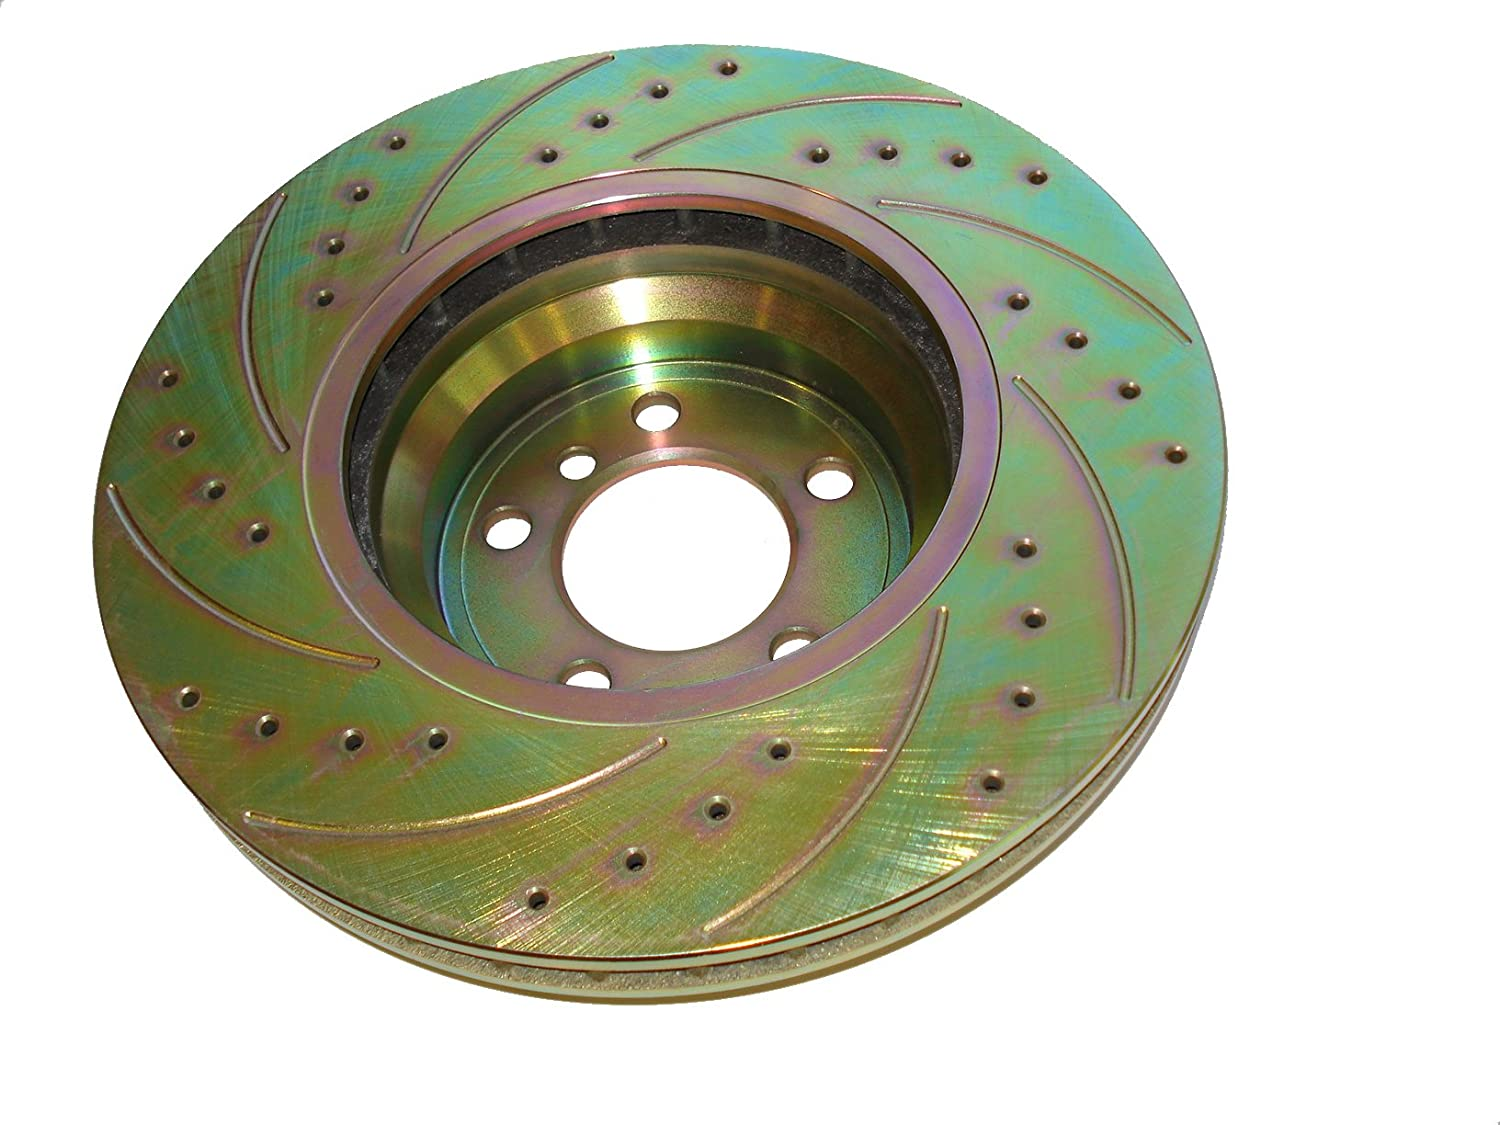 Front Vented Cross Drilled /& Slotted ONLY 34-11-6-750-267 MTC 1866 for BMW Models Set of 2 MTC 1866//34-11-6-750-267 Brake Disc Rotor